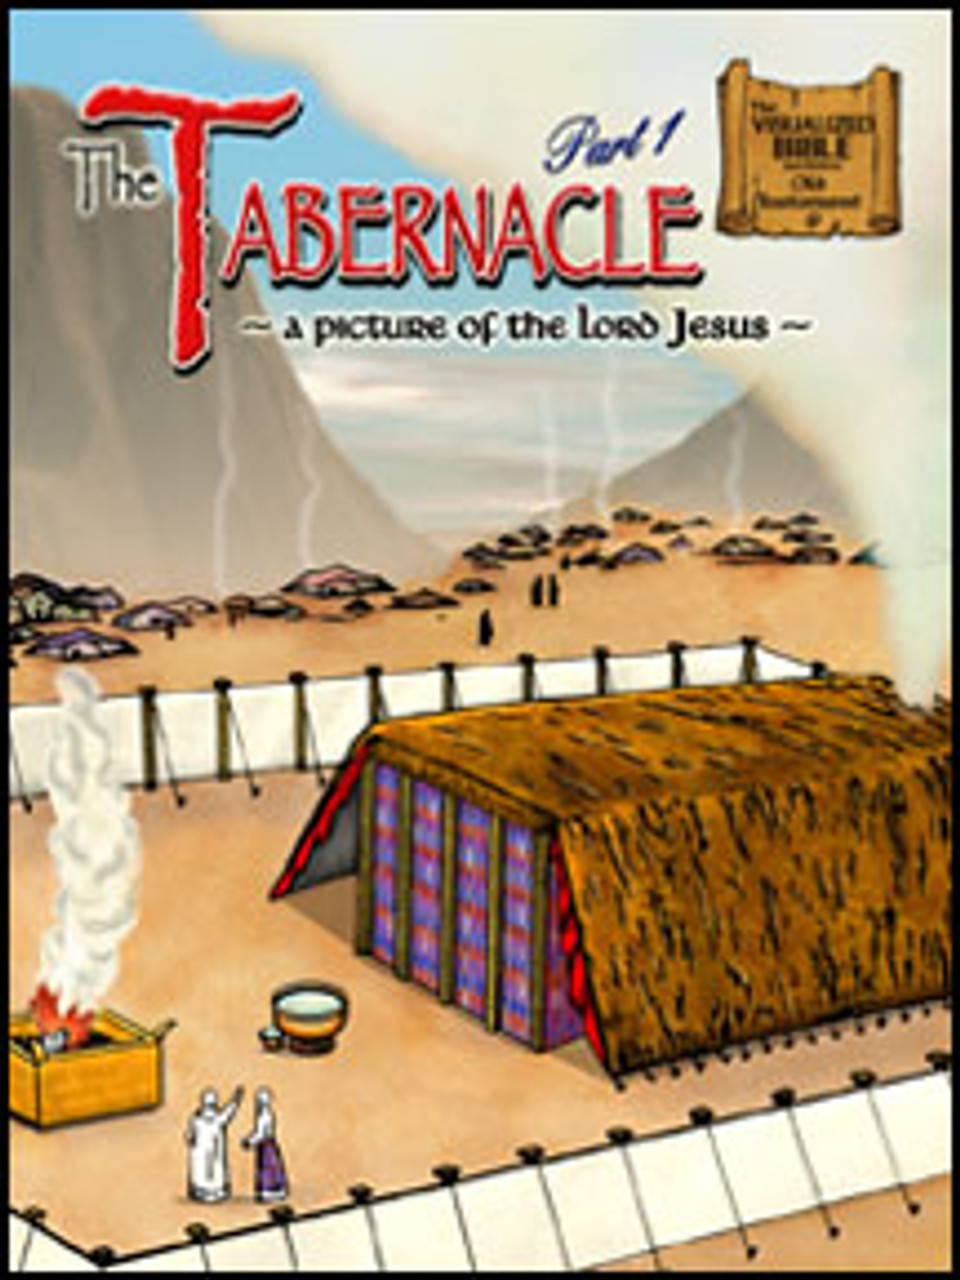 The Tabernacle Part 1 (visuals only)